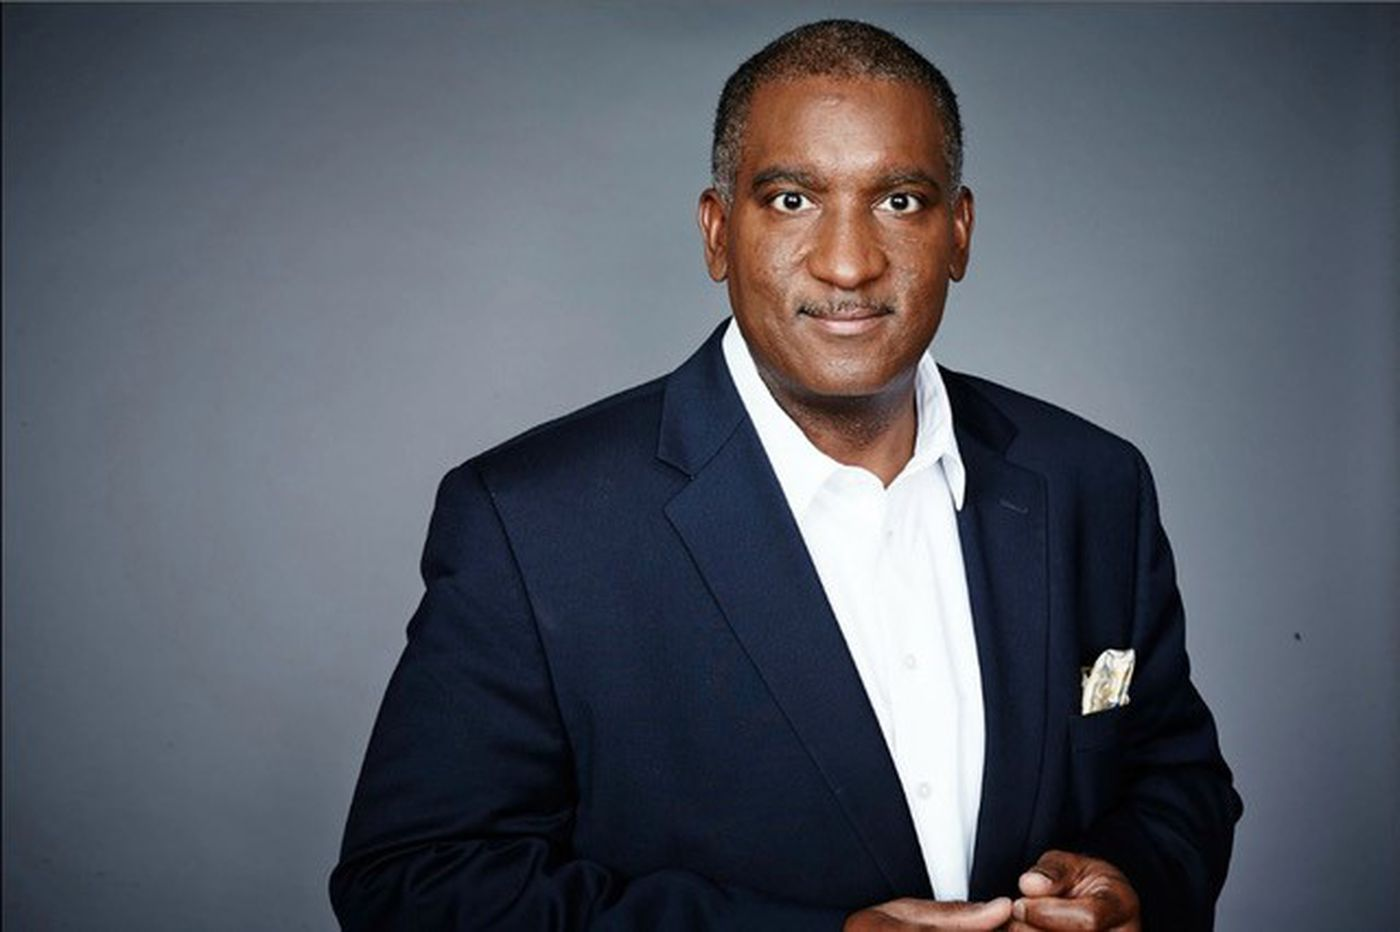 Temple University professor and media icon Bryan Monroe dies suddenly at 55